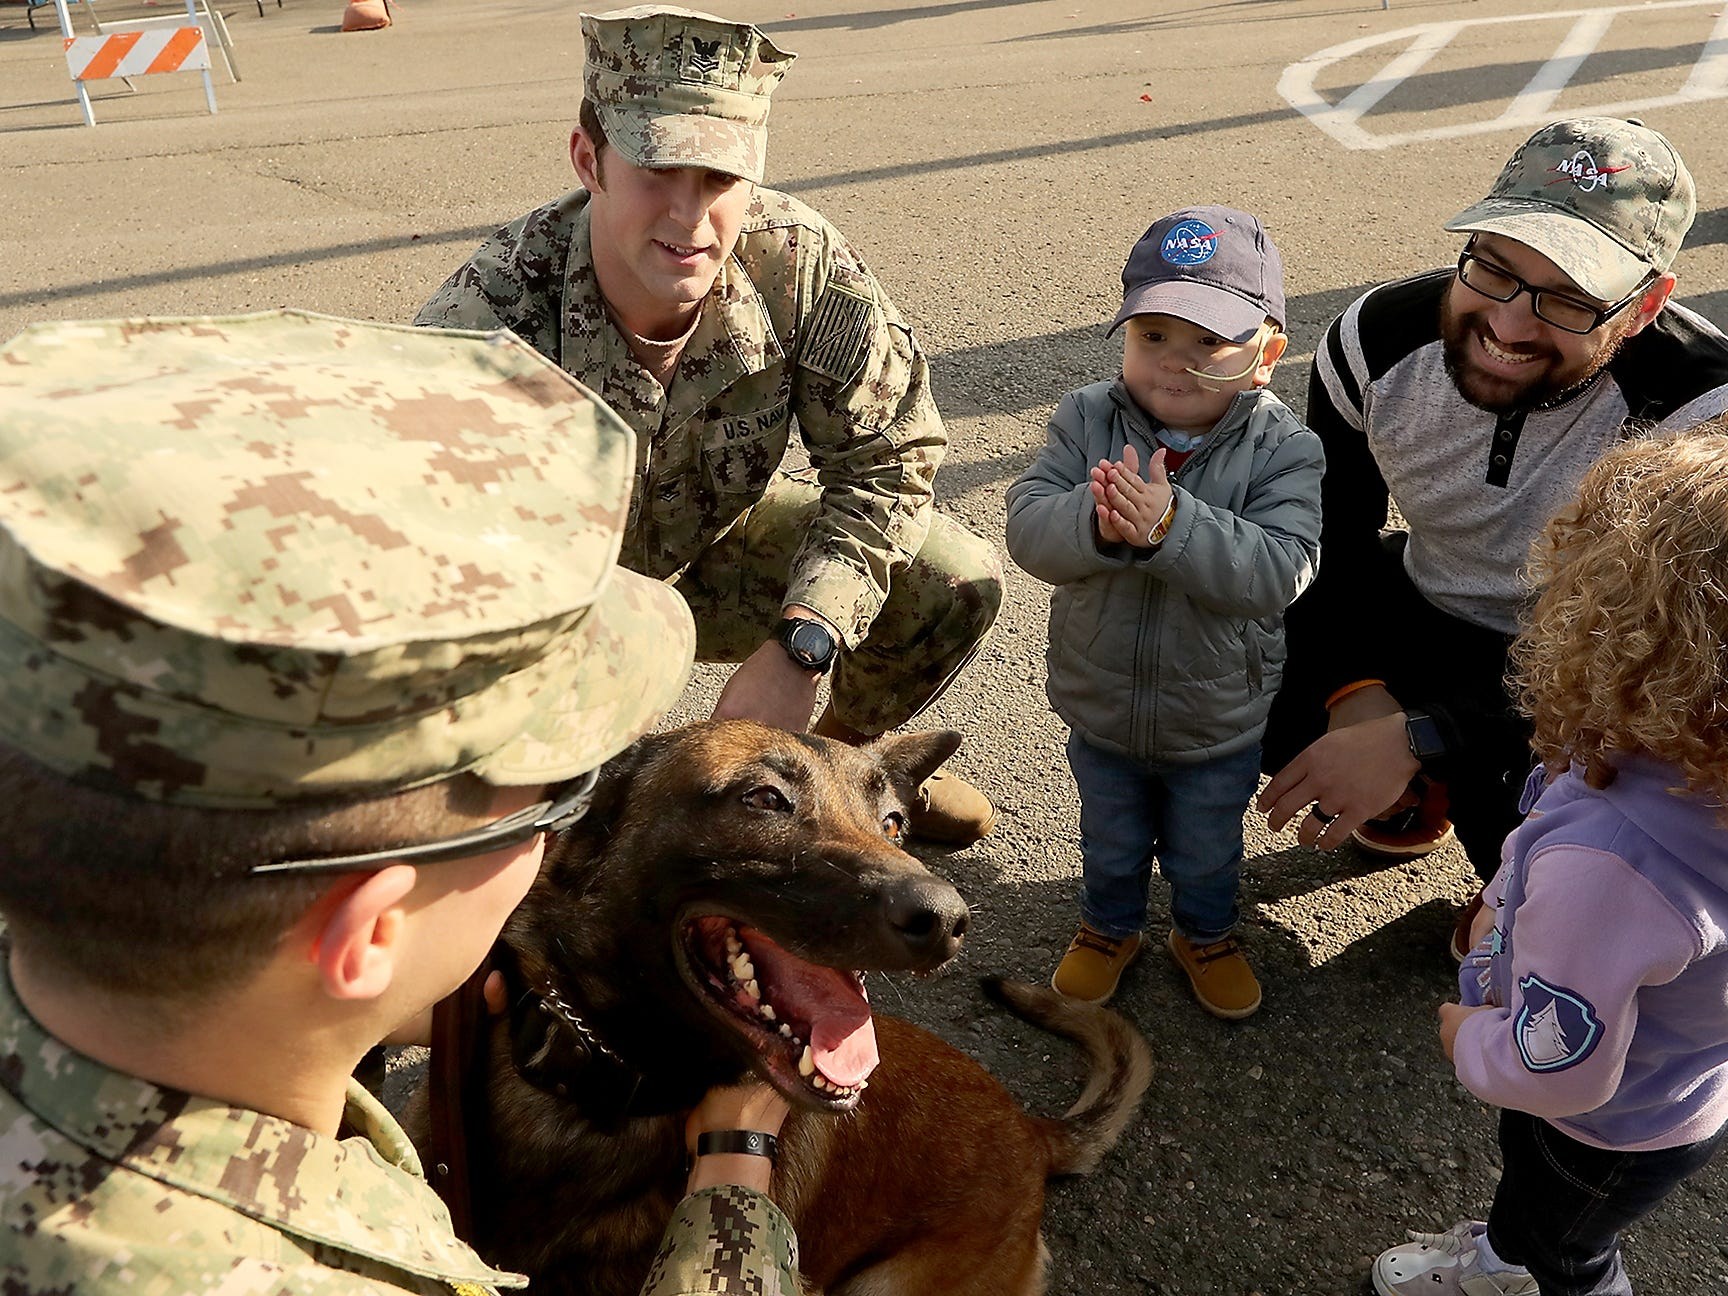 Naval Base Bangor's Robert Dorato (left) and William Patterson (center) introduce Dorato's Military Working Dog (MWD) Bbrazas to three-year-old Jedi Minters, his father Jason during Jedi's Special Day on Wednesday, November 7, 2018.